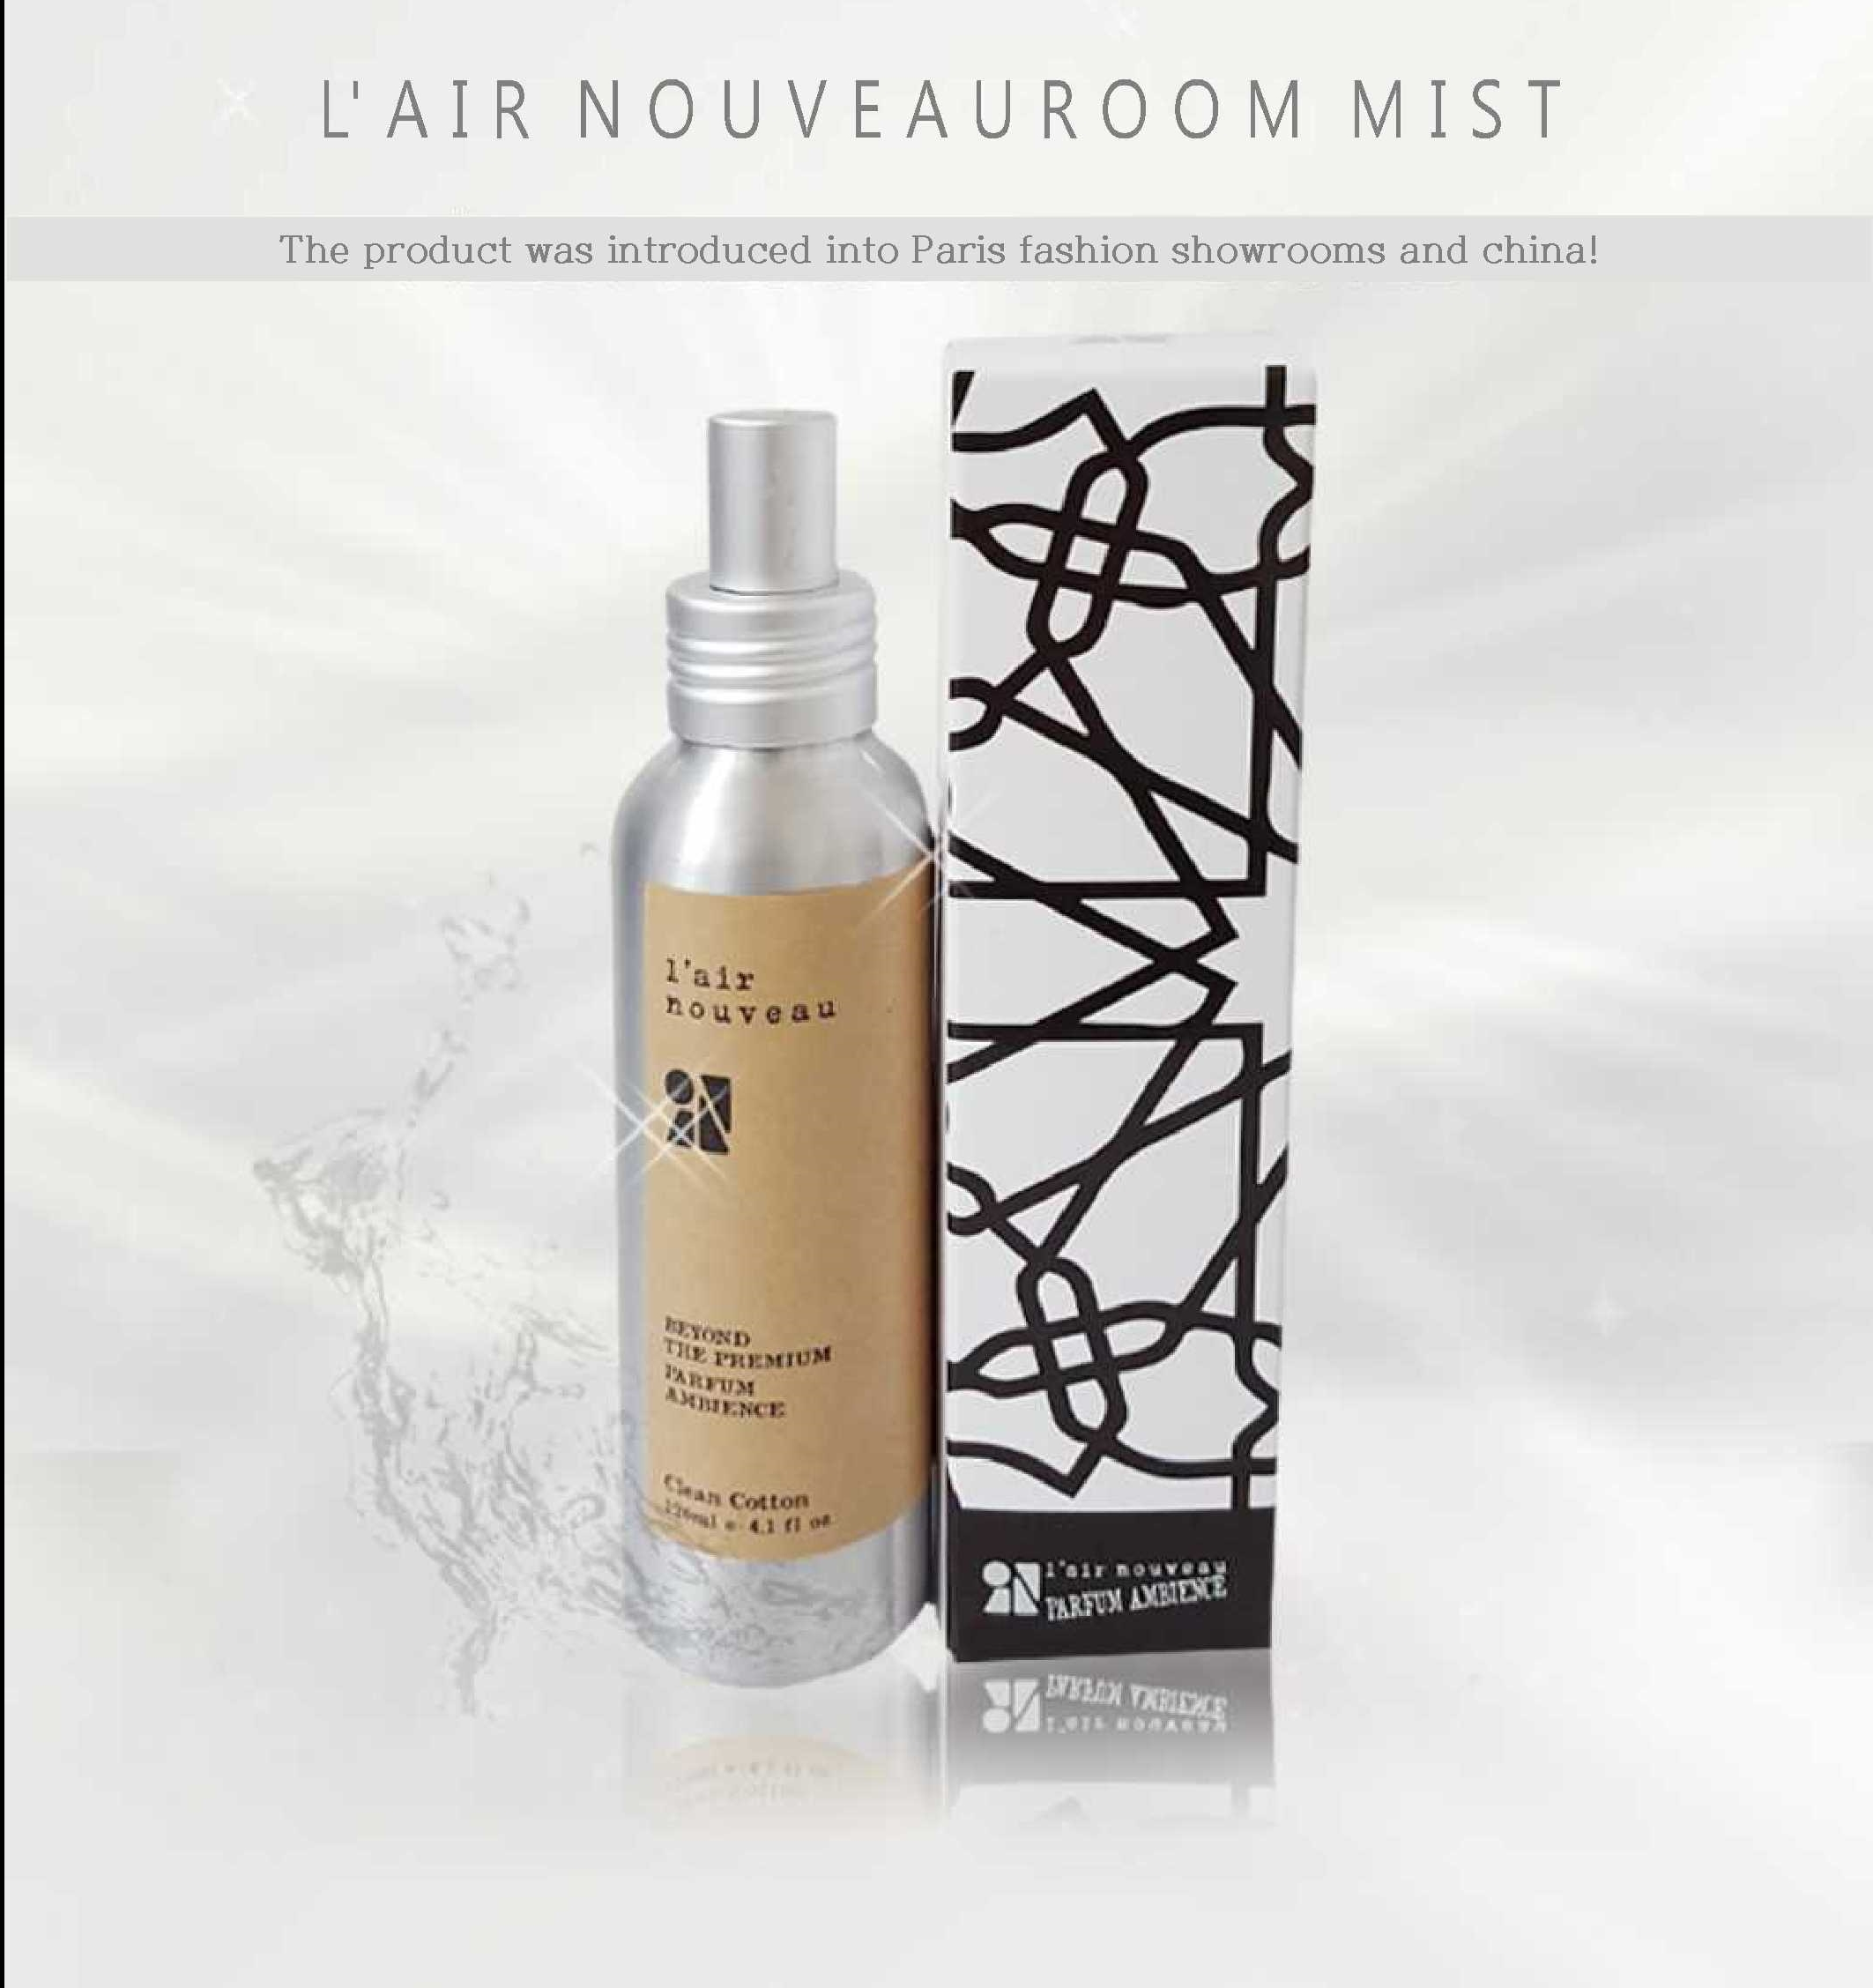 [Lairnouveau] Room Mist Home Fragrance Natural Perfume 120ml